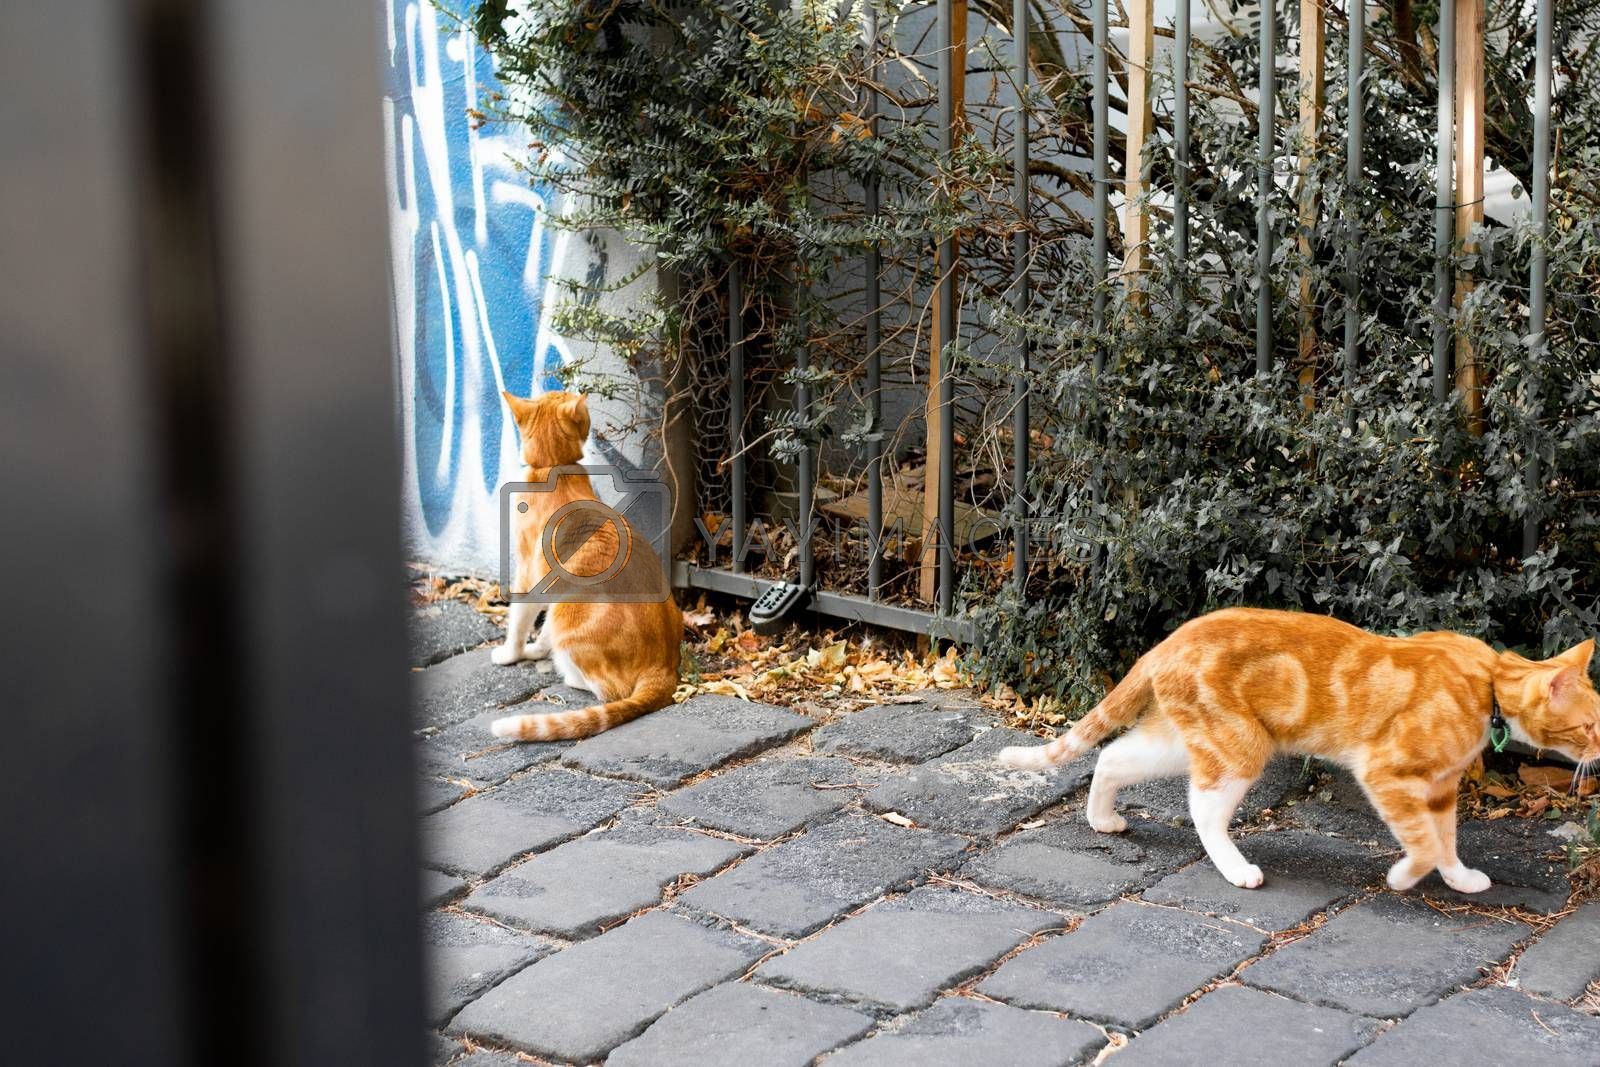 Two curious orange ginger cats exploring in an urban neighborhood